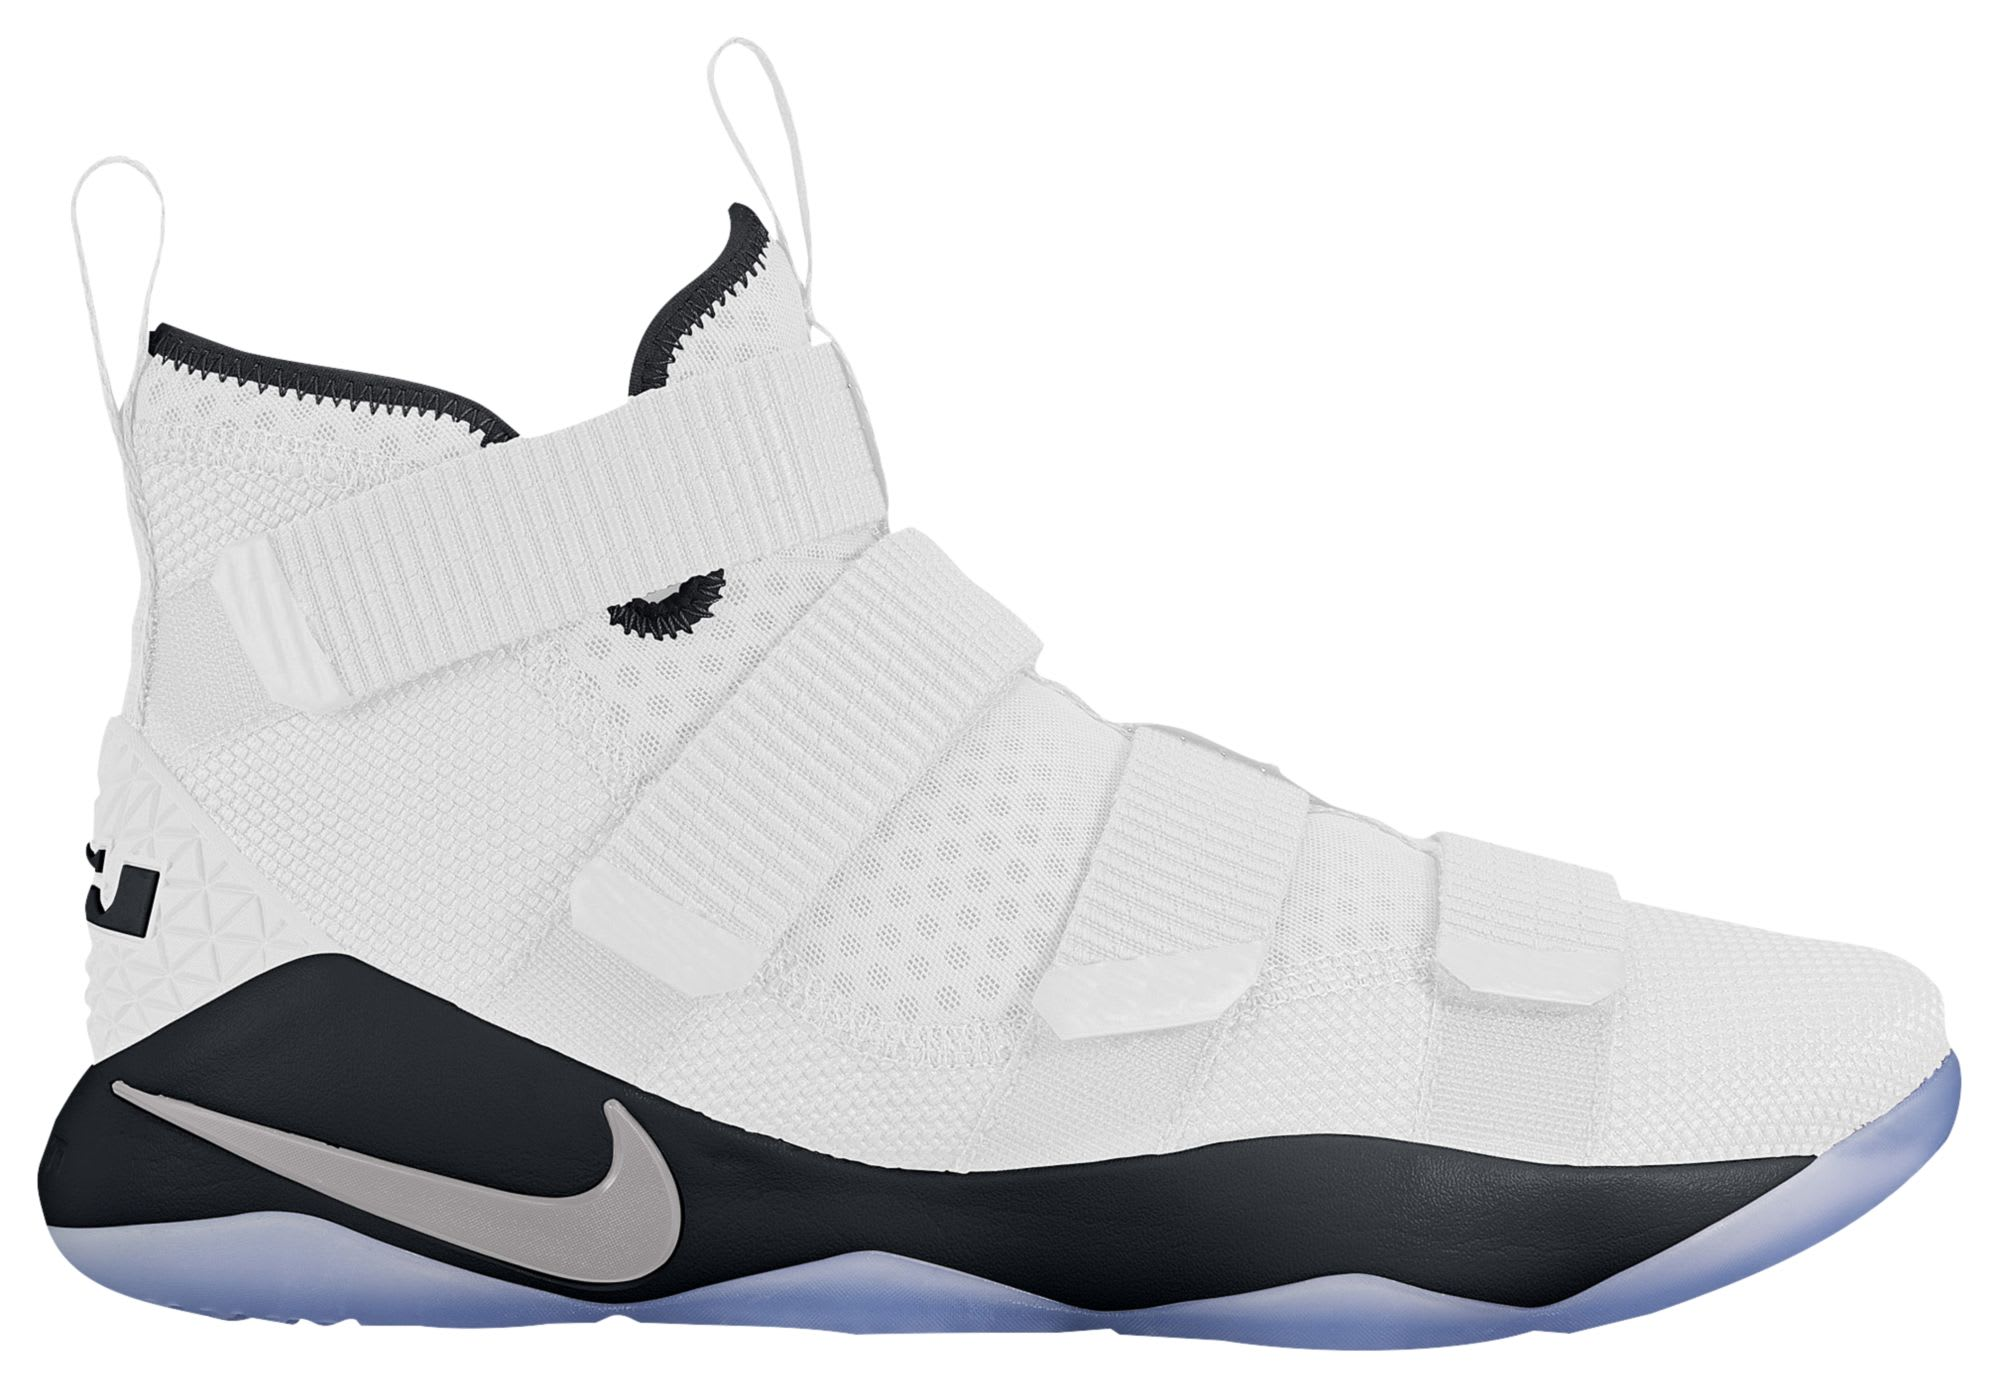 Nike LeBron Soldier 11 TB White Black